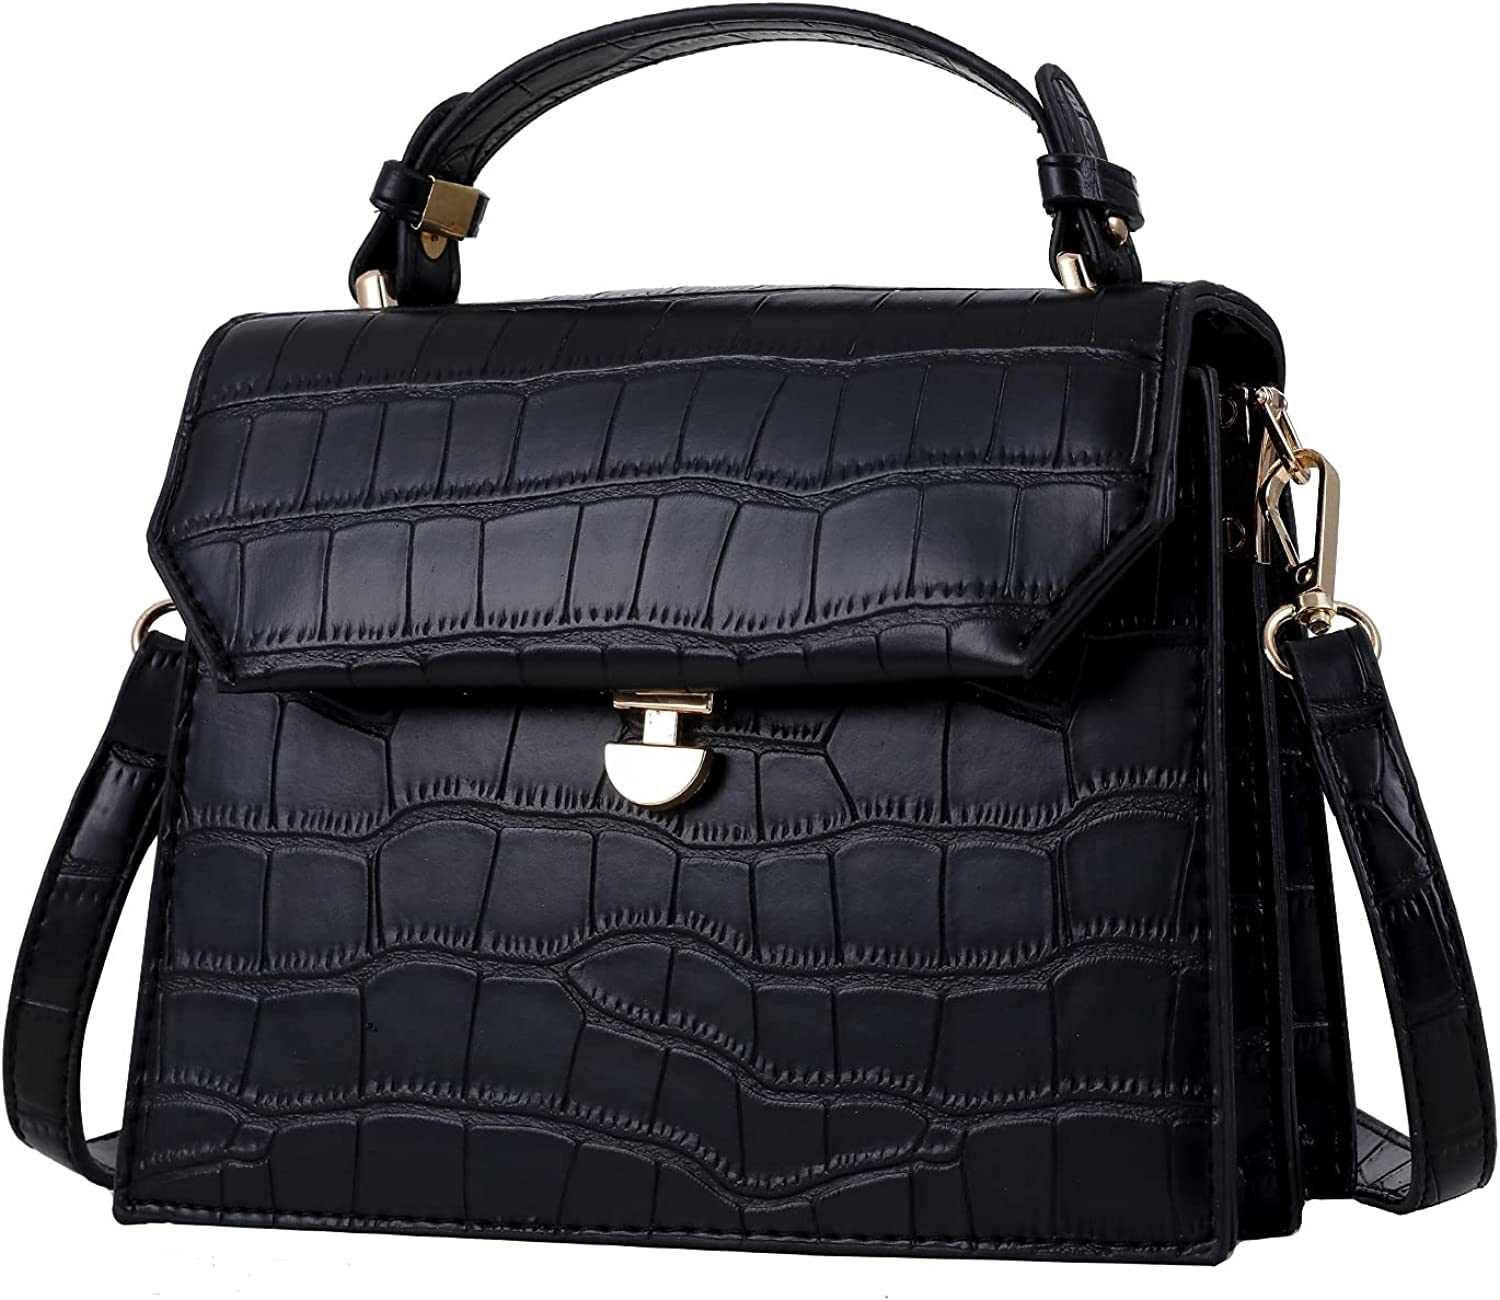 Qiayime Womens Purses and Buckle Bags Shoulder Handbags Max 82% OFF shop